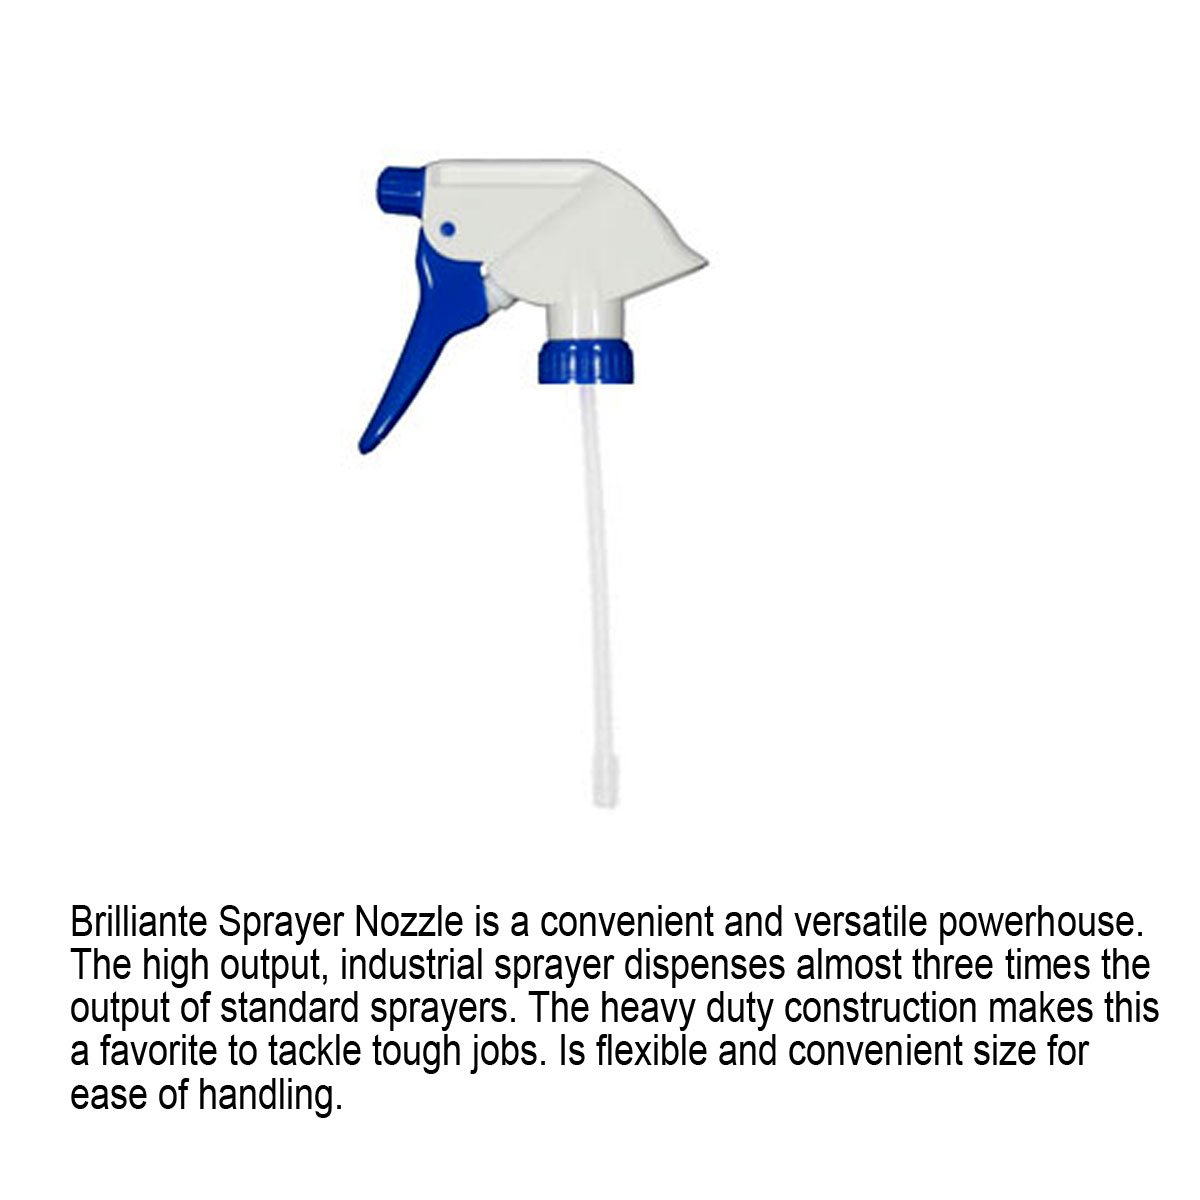 Amazon brilliante crystal chandelier cleaner manual sprayer amazon brilliante crystal chandelier cleaner manual sprayer 32oz environmentally safe ammonia free drip dry formula made in usa 1 home kitchen mozeypictures Choice Image